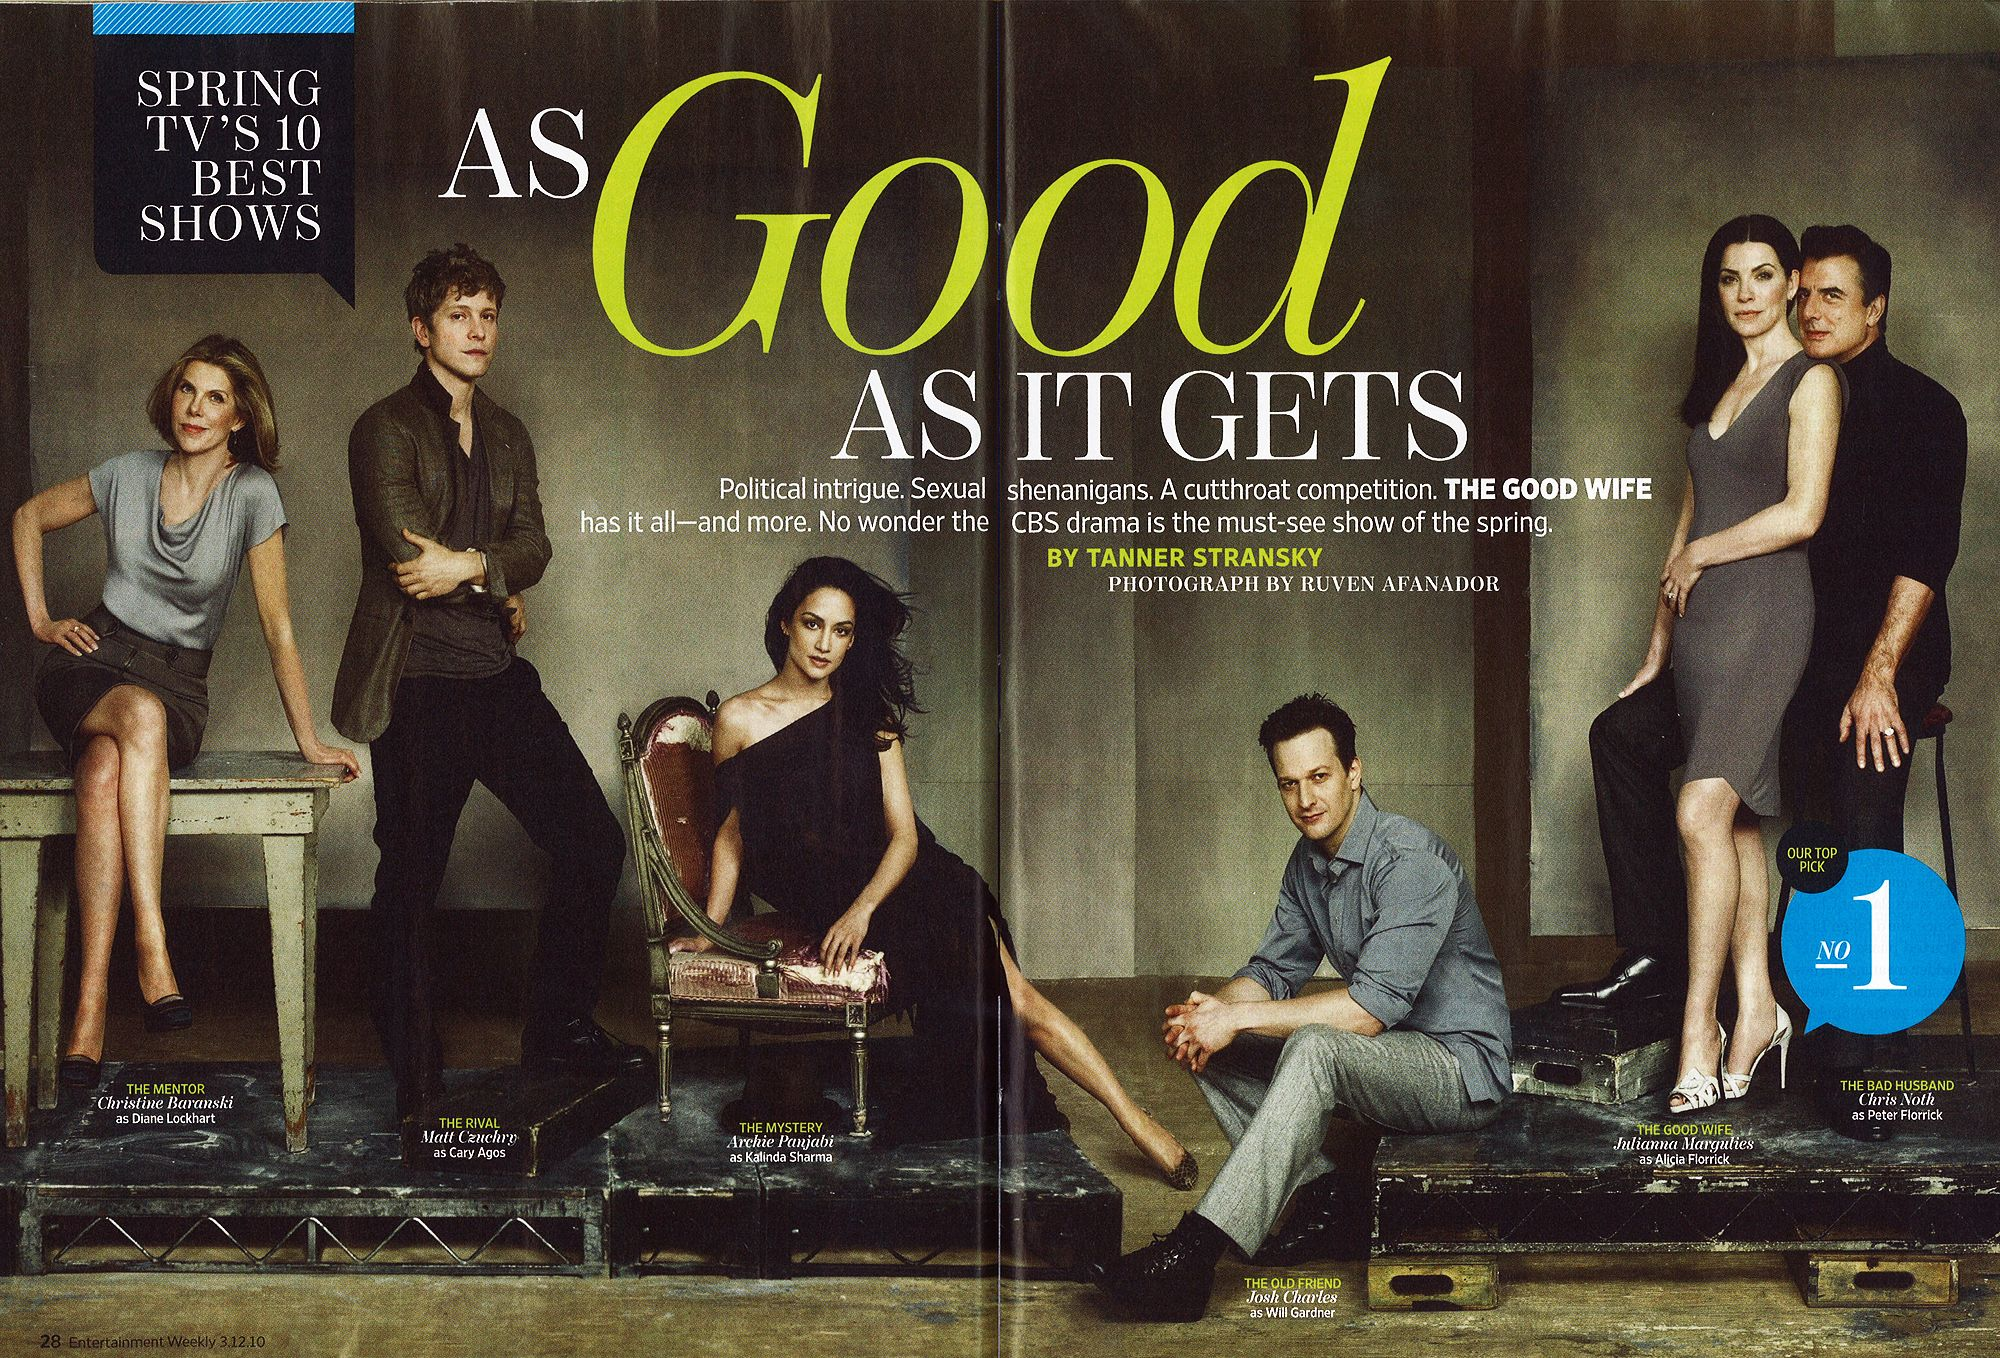 this has to the best ensemble cast on tv today.  Extra love though for Archie Panjabi, Josh Charles and Julianna Margulies